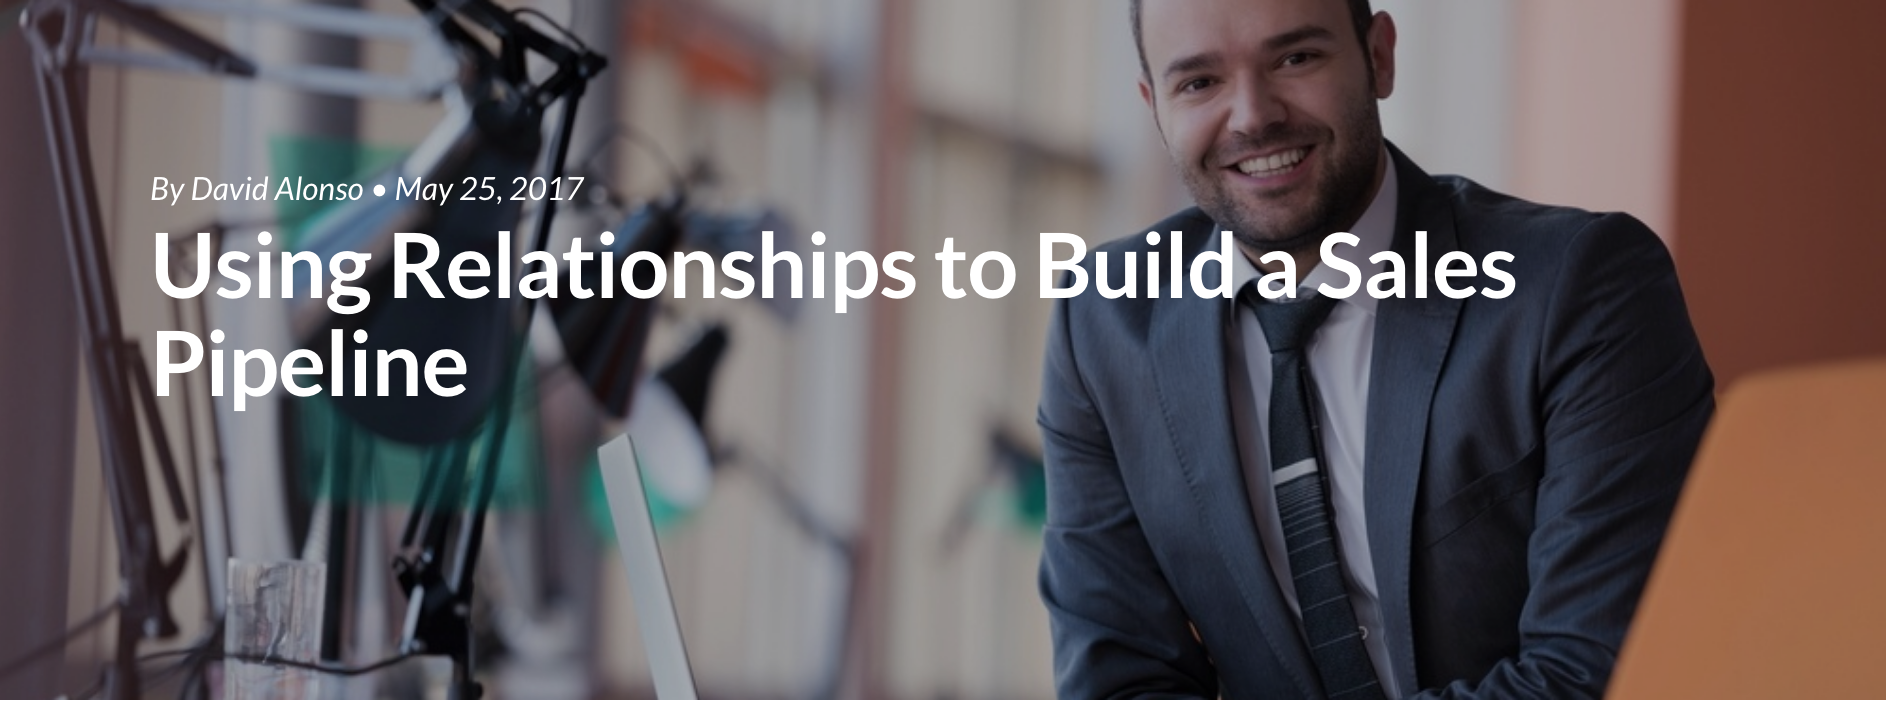 Using Relationships to Build a Sales Pipeline